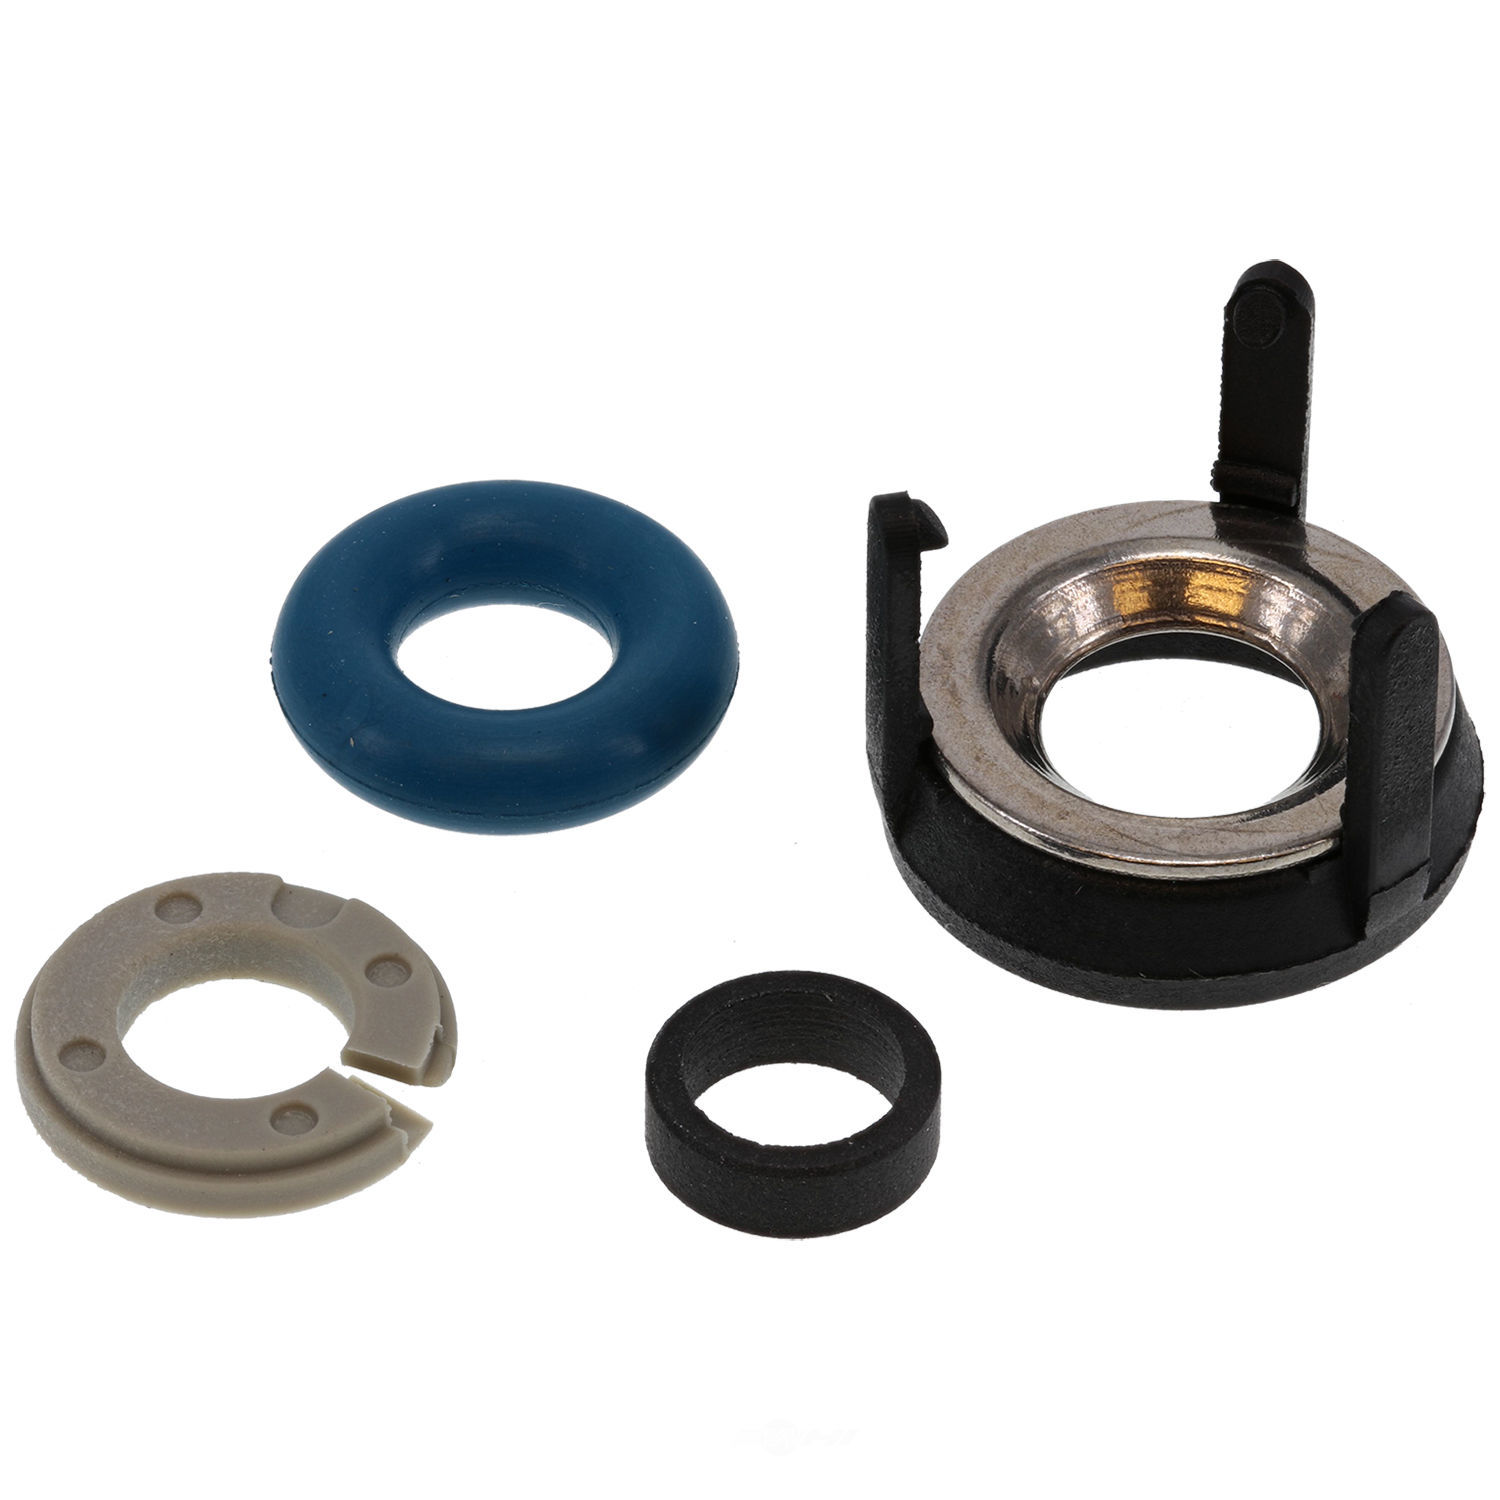 GB REMANUFACTURING INC. - Fuel Injector Seal Kit - GBR 8-070